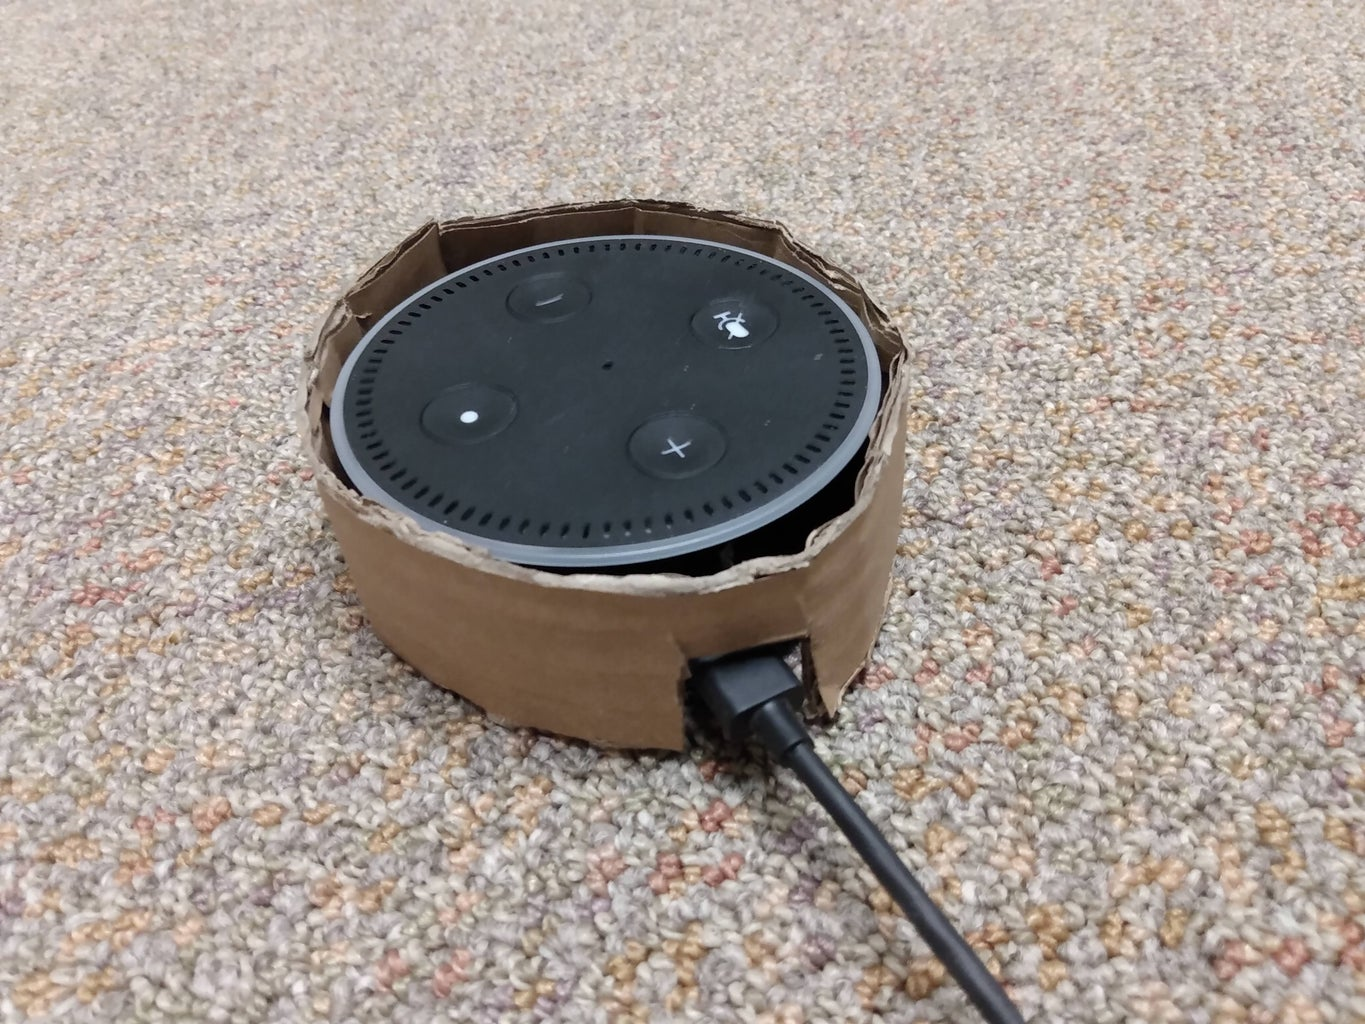 Make a Holder for the Real Echo Dot